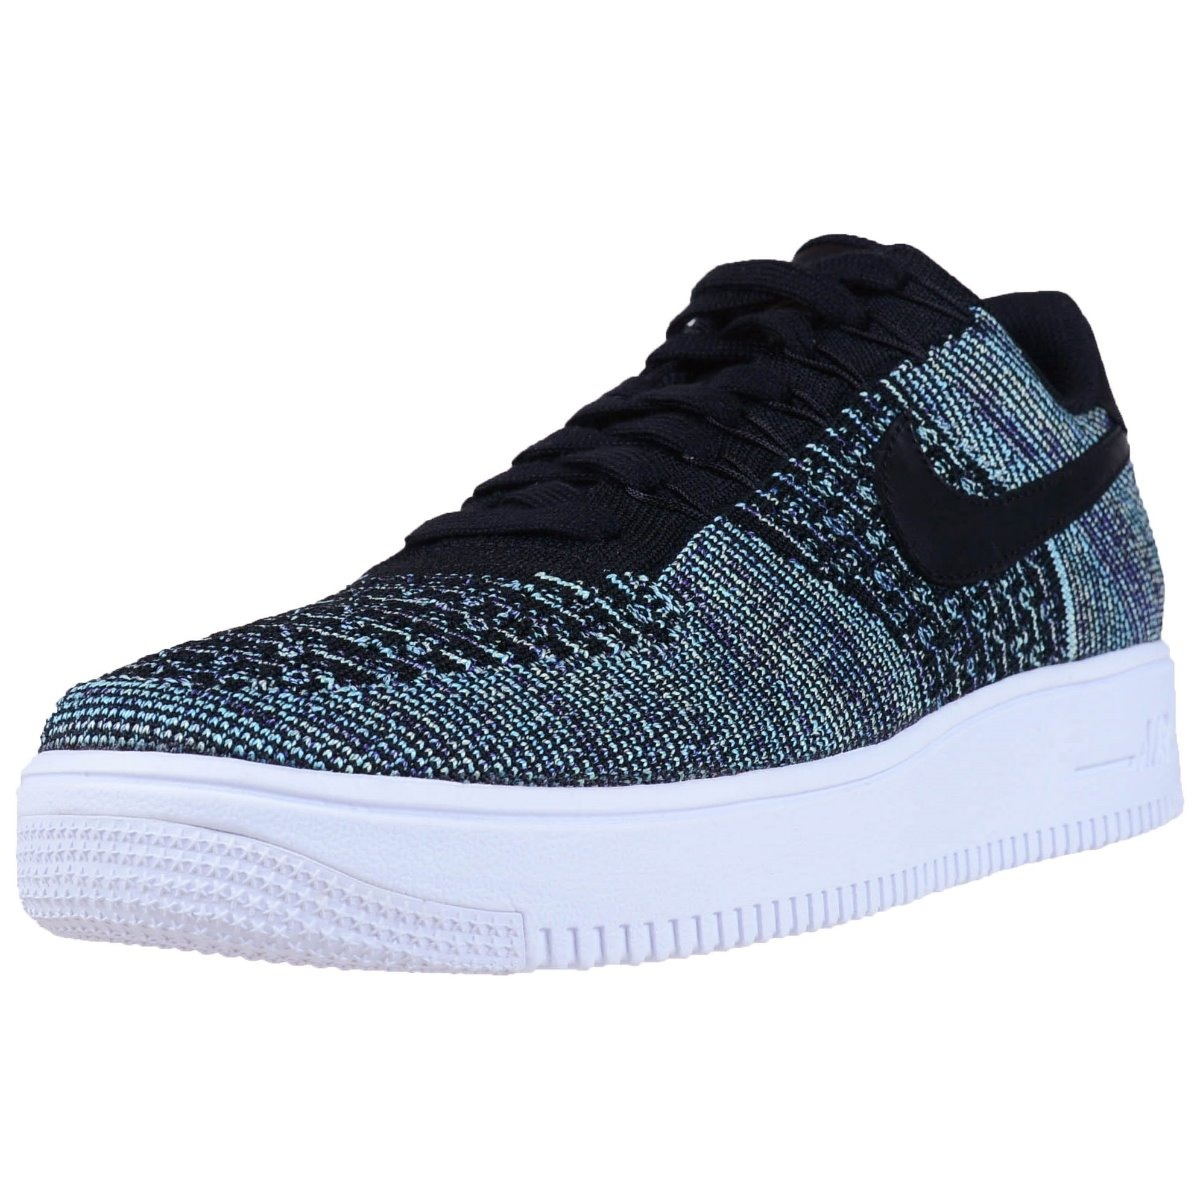 d78c823d8dcfc ... inexpensive tenis nike air force one ultra flyknit low nuevos 28.5  mira. cargando zoom.